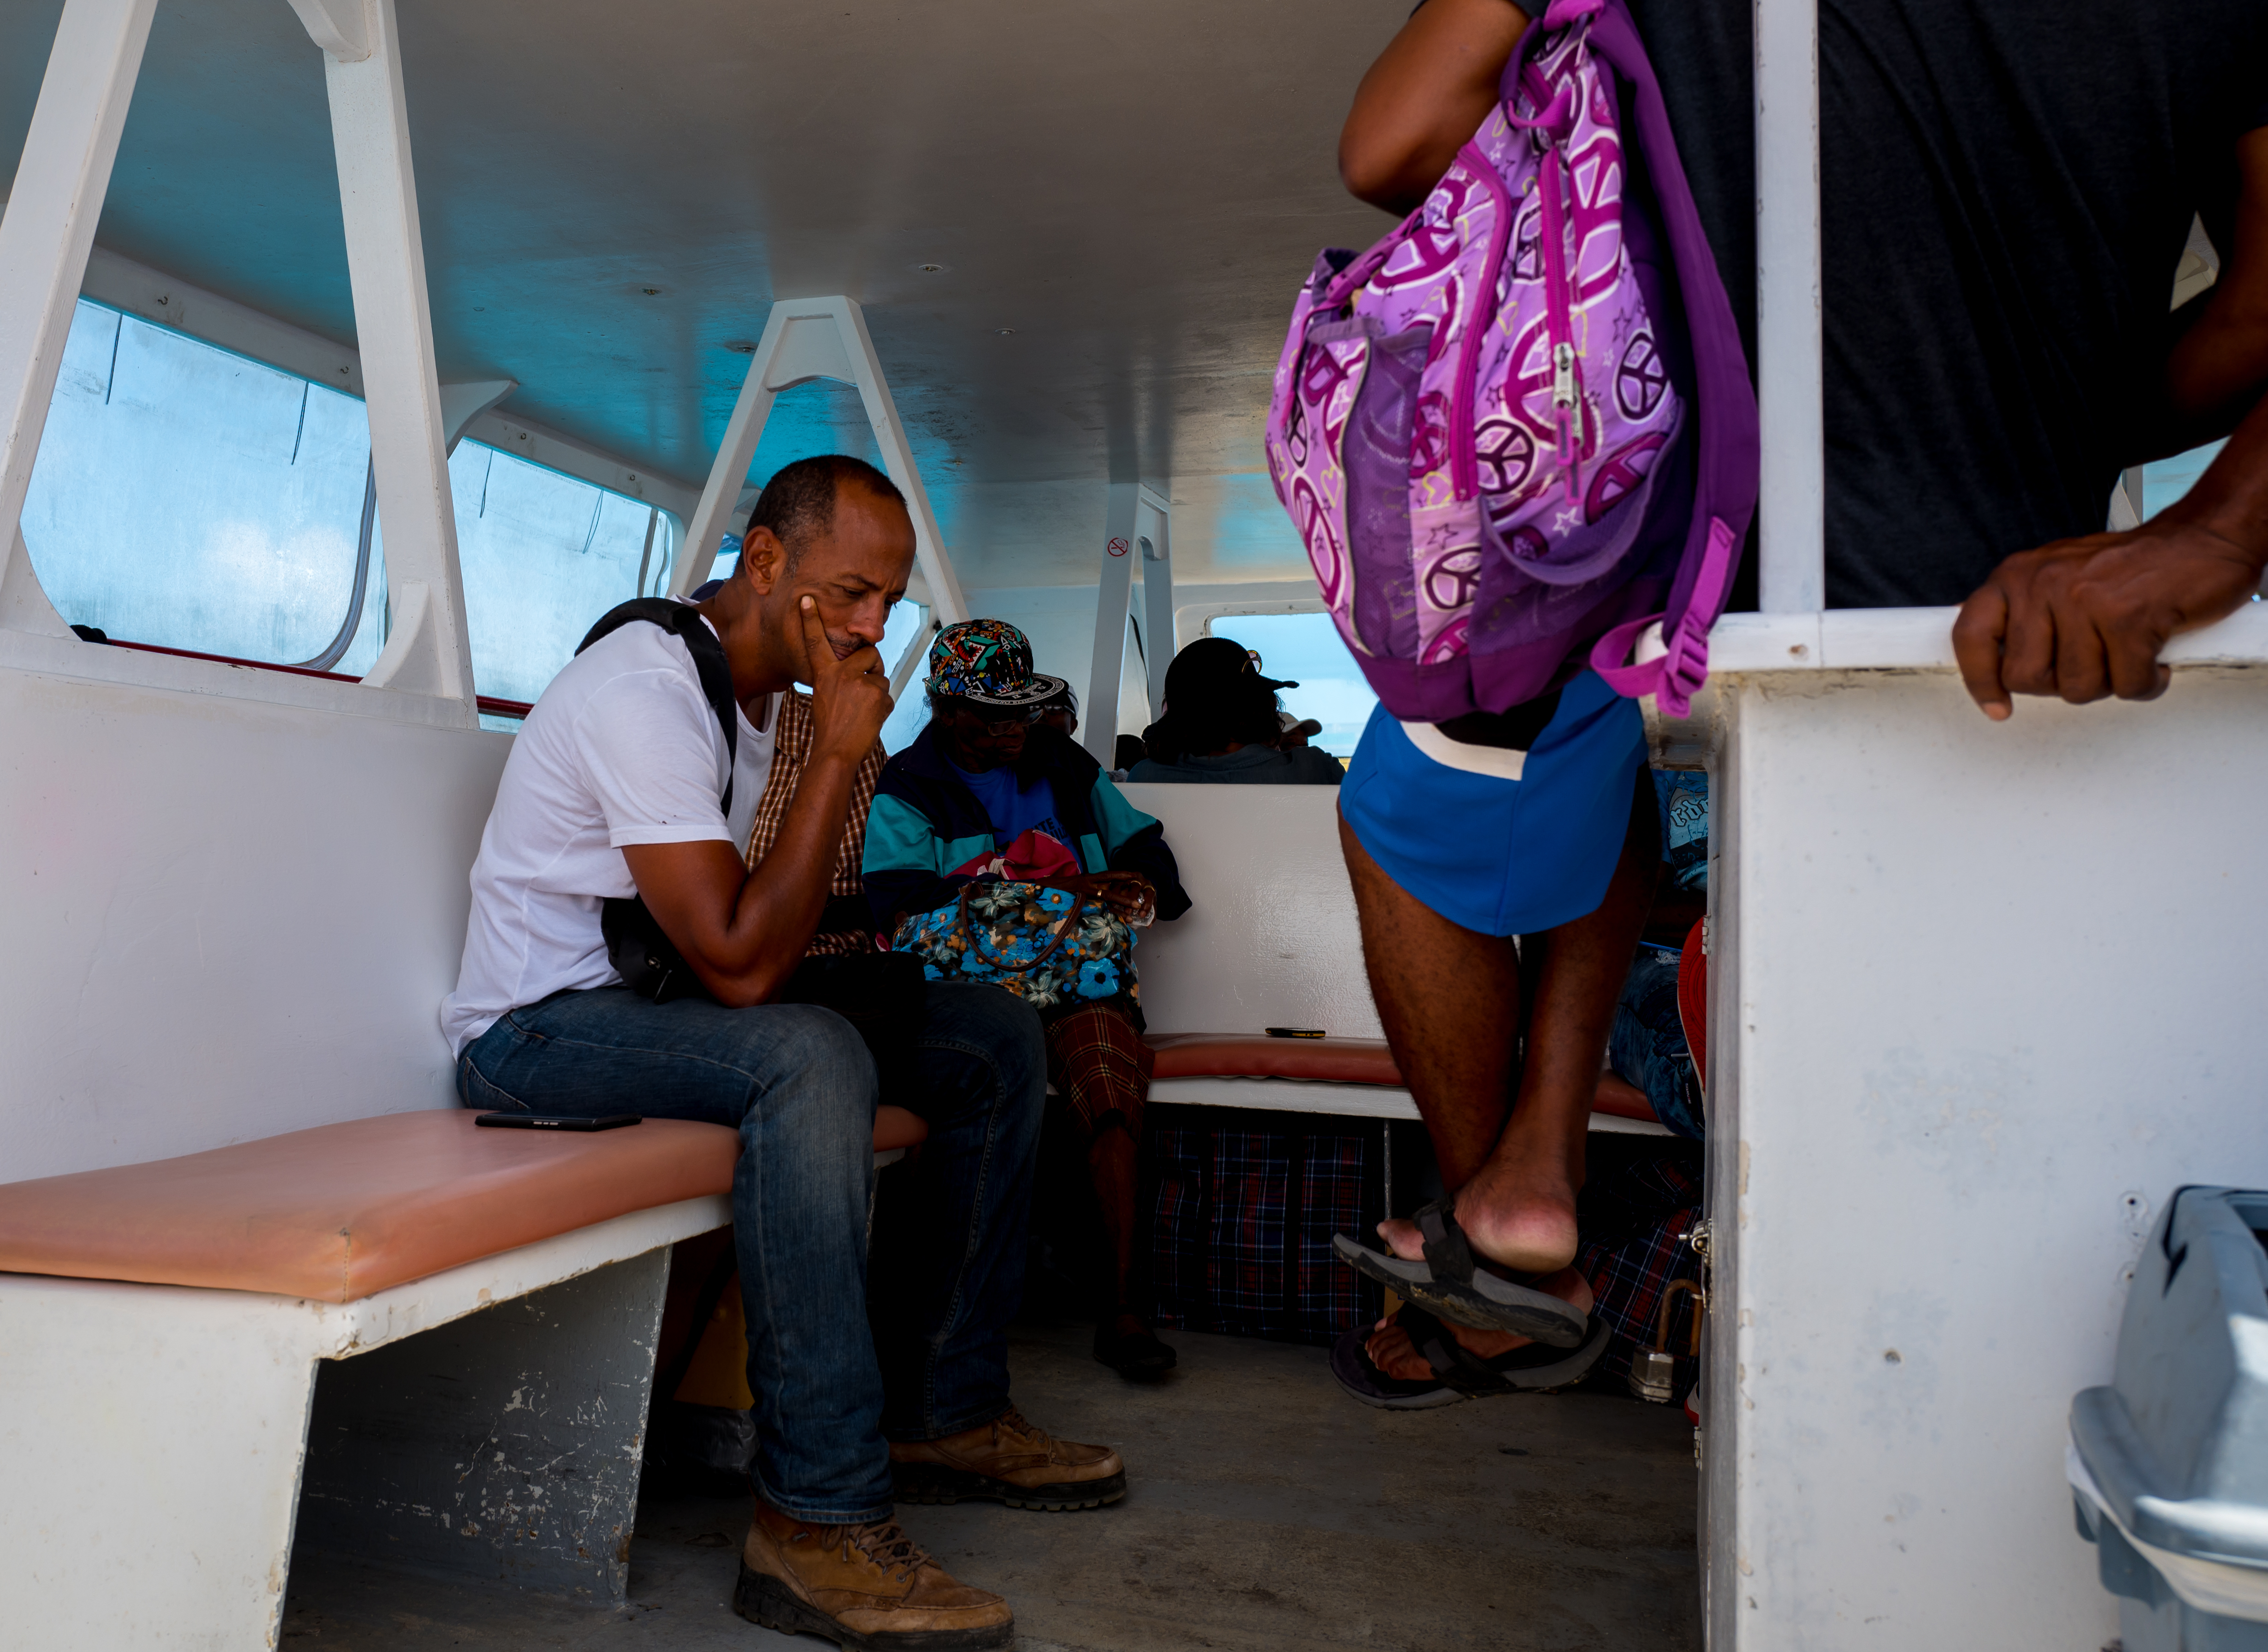 Heading to Barbuda on the Barbuda Express, a high-speed ferry, that makes the 32-mile crossing in almost any weather in about 90 minutes. Some 500 Barbudans have returned to the island since the government in Antigua lifted the mandatory evacuation order in late September 2017.